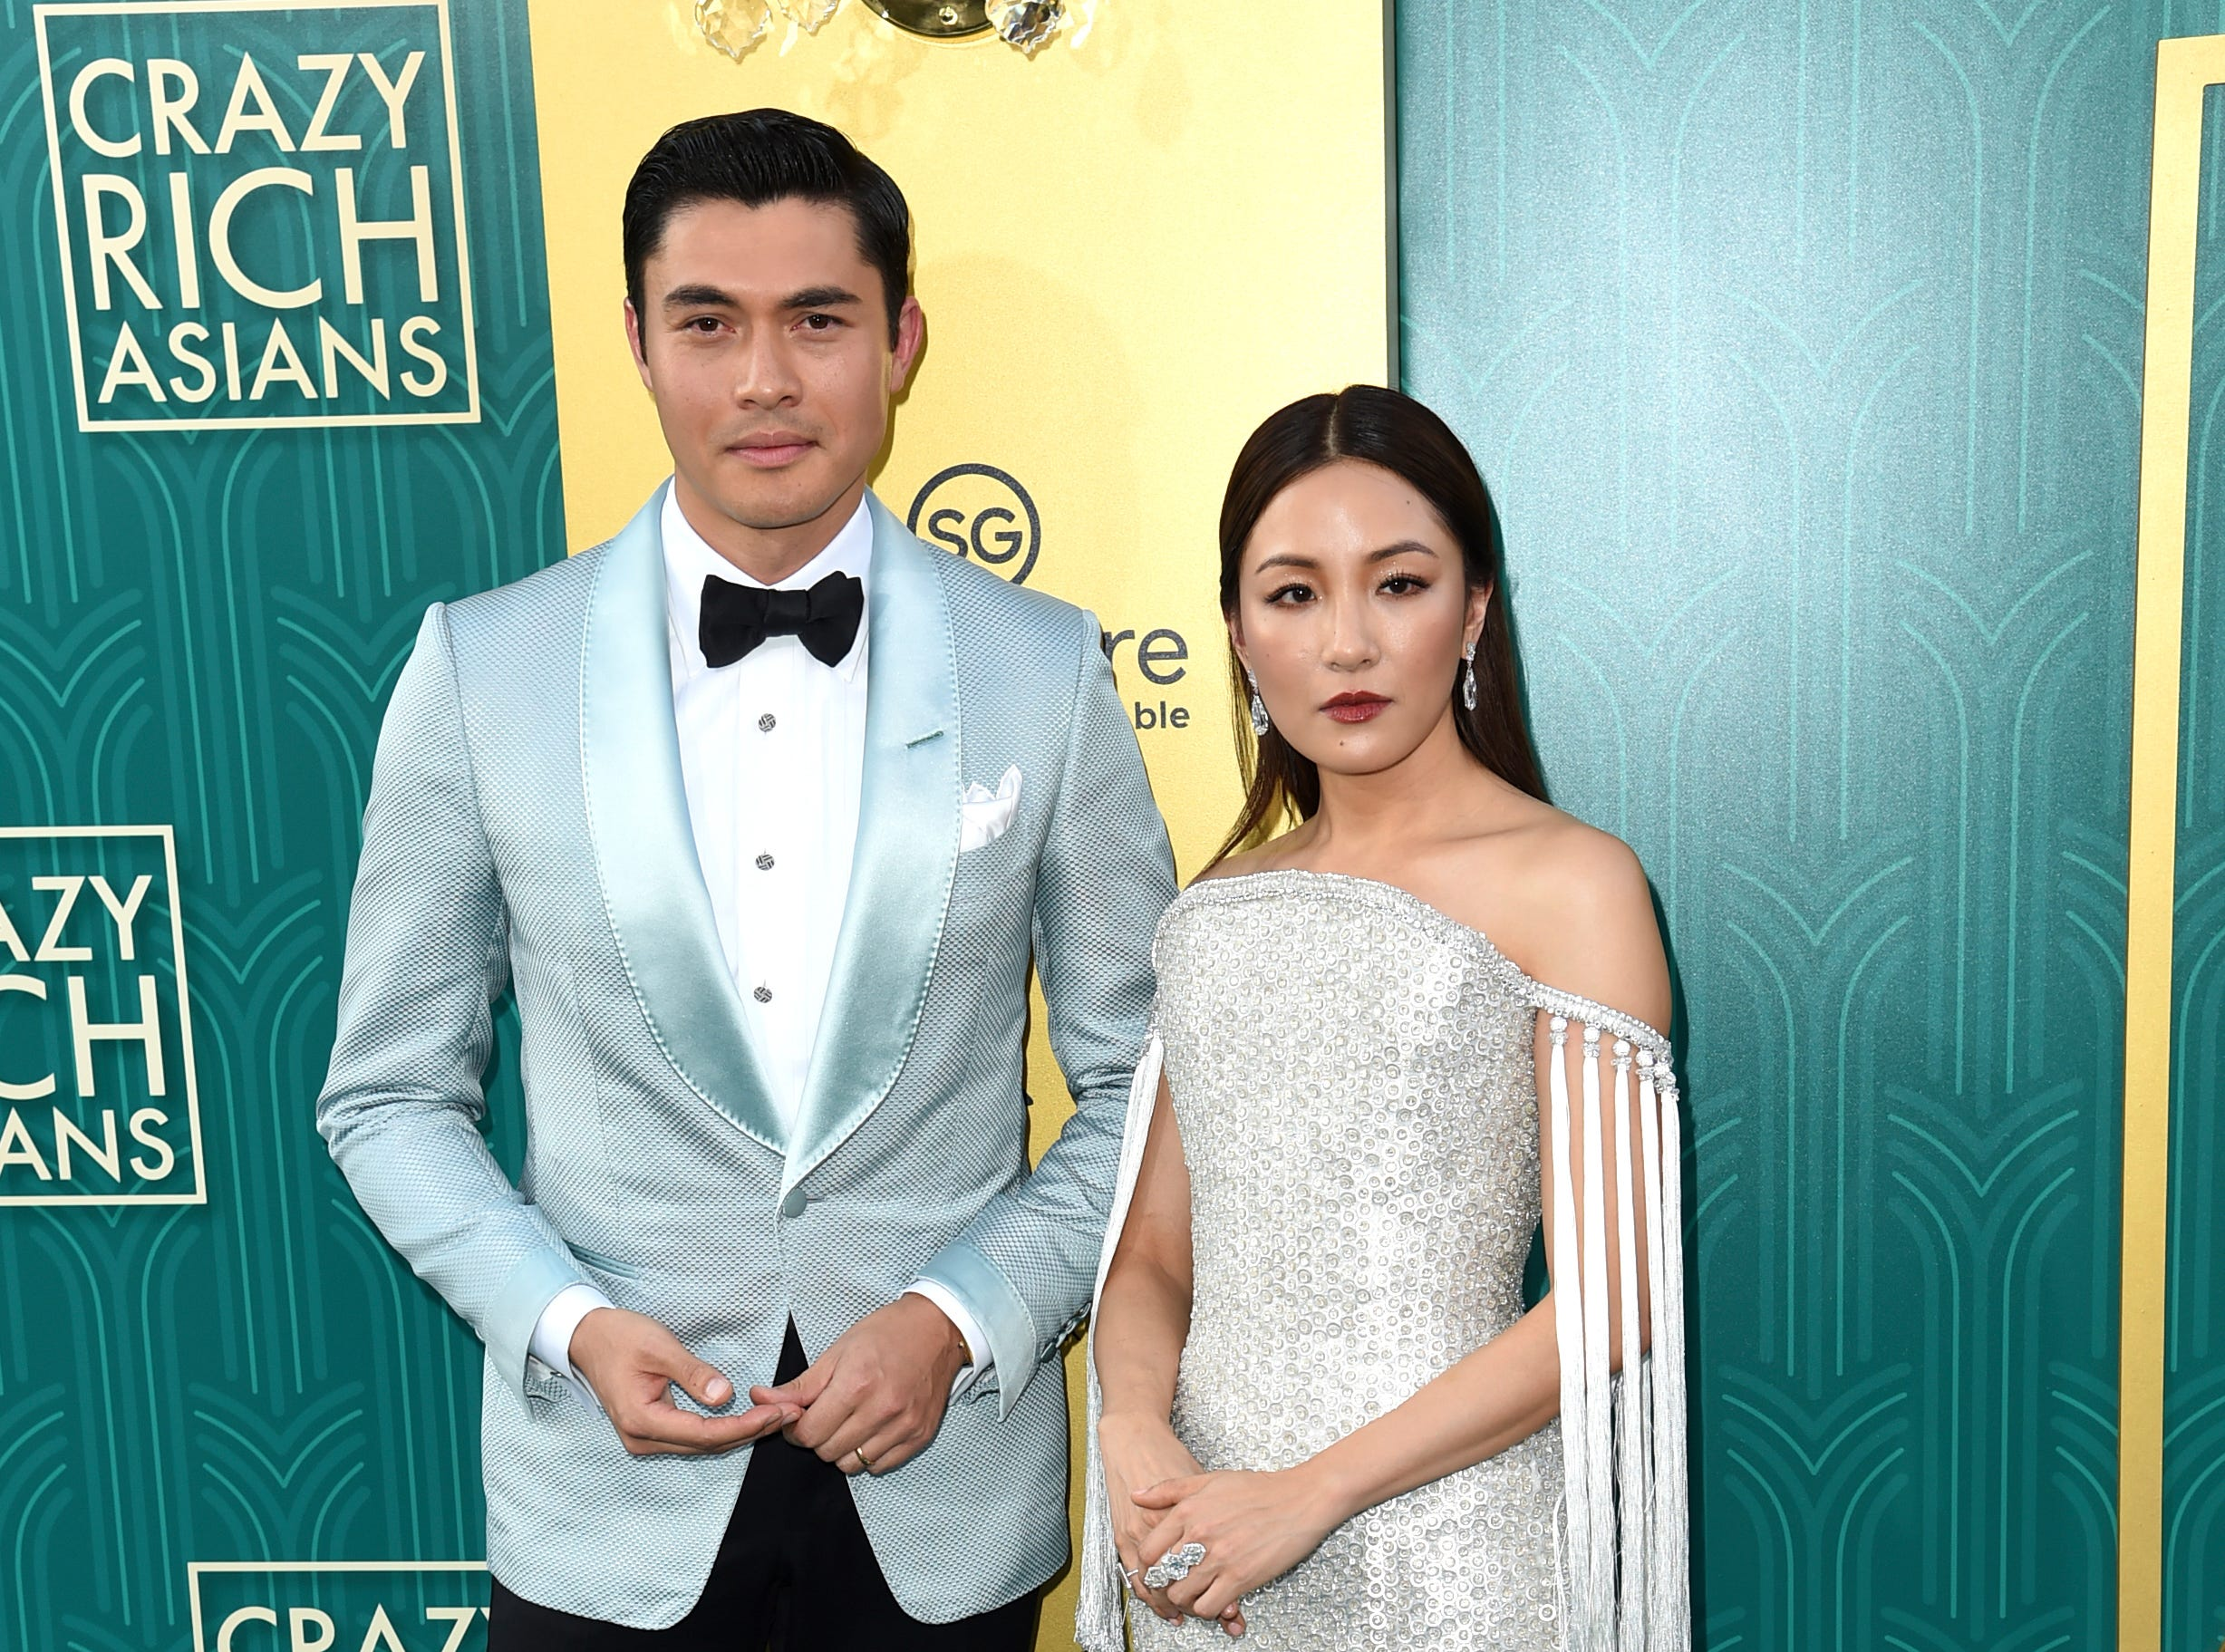 The highly anticipated romantic comedy, based on Kevin Kwan's best-selling book series, follows the story of NYU economics professor Rachel Chu (played by Constance Wu, right) going to meet her secret billionaire boyfriend's parents in Singapore (portrayed by Henry Golding, left).